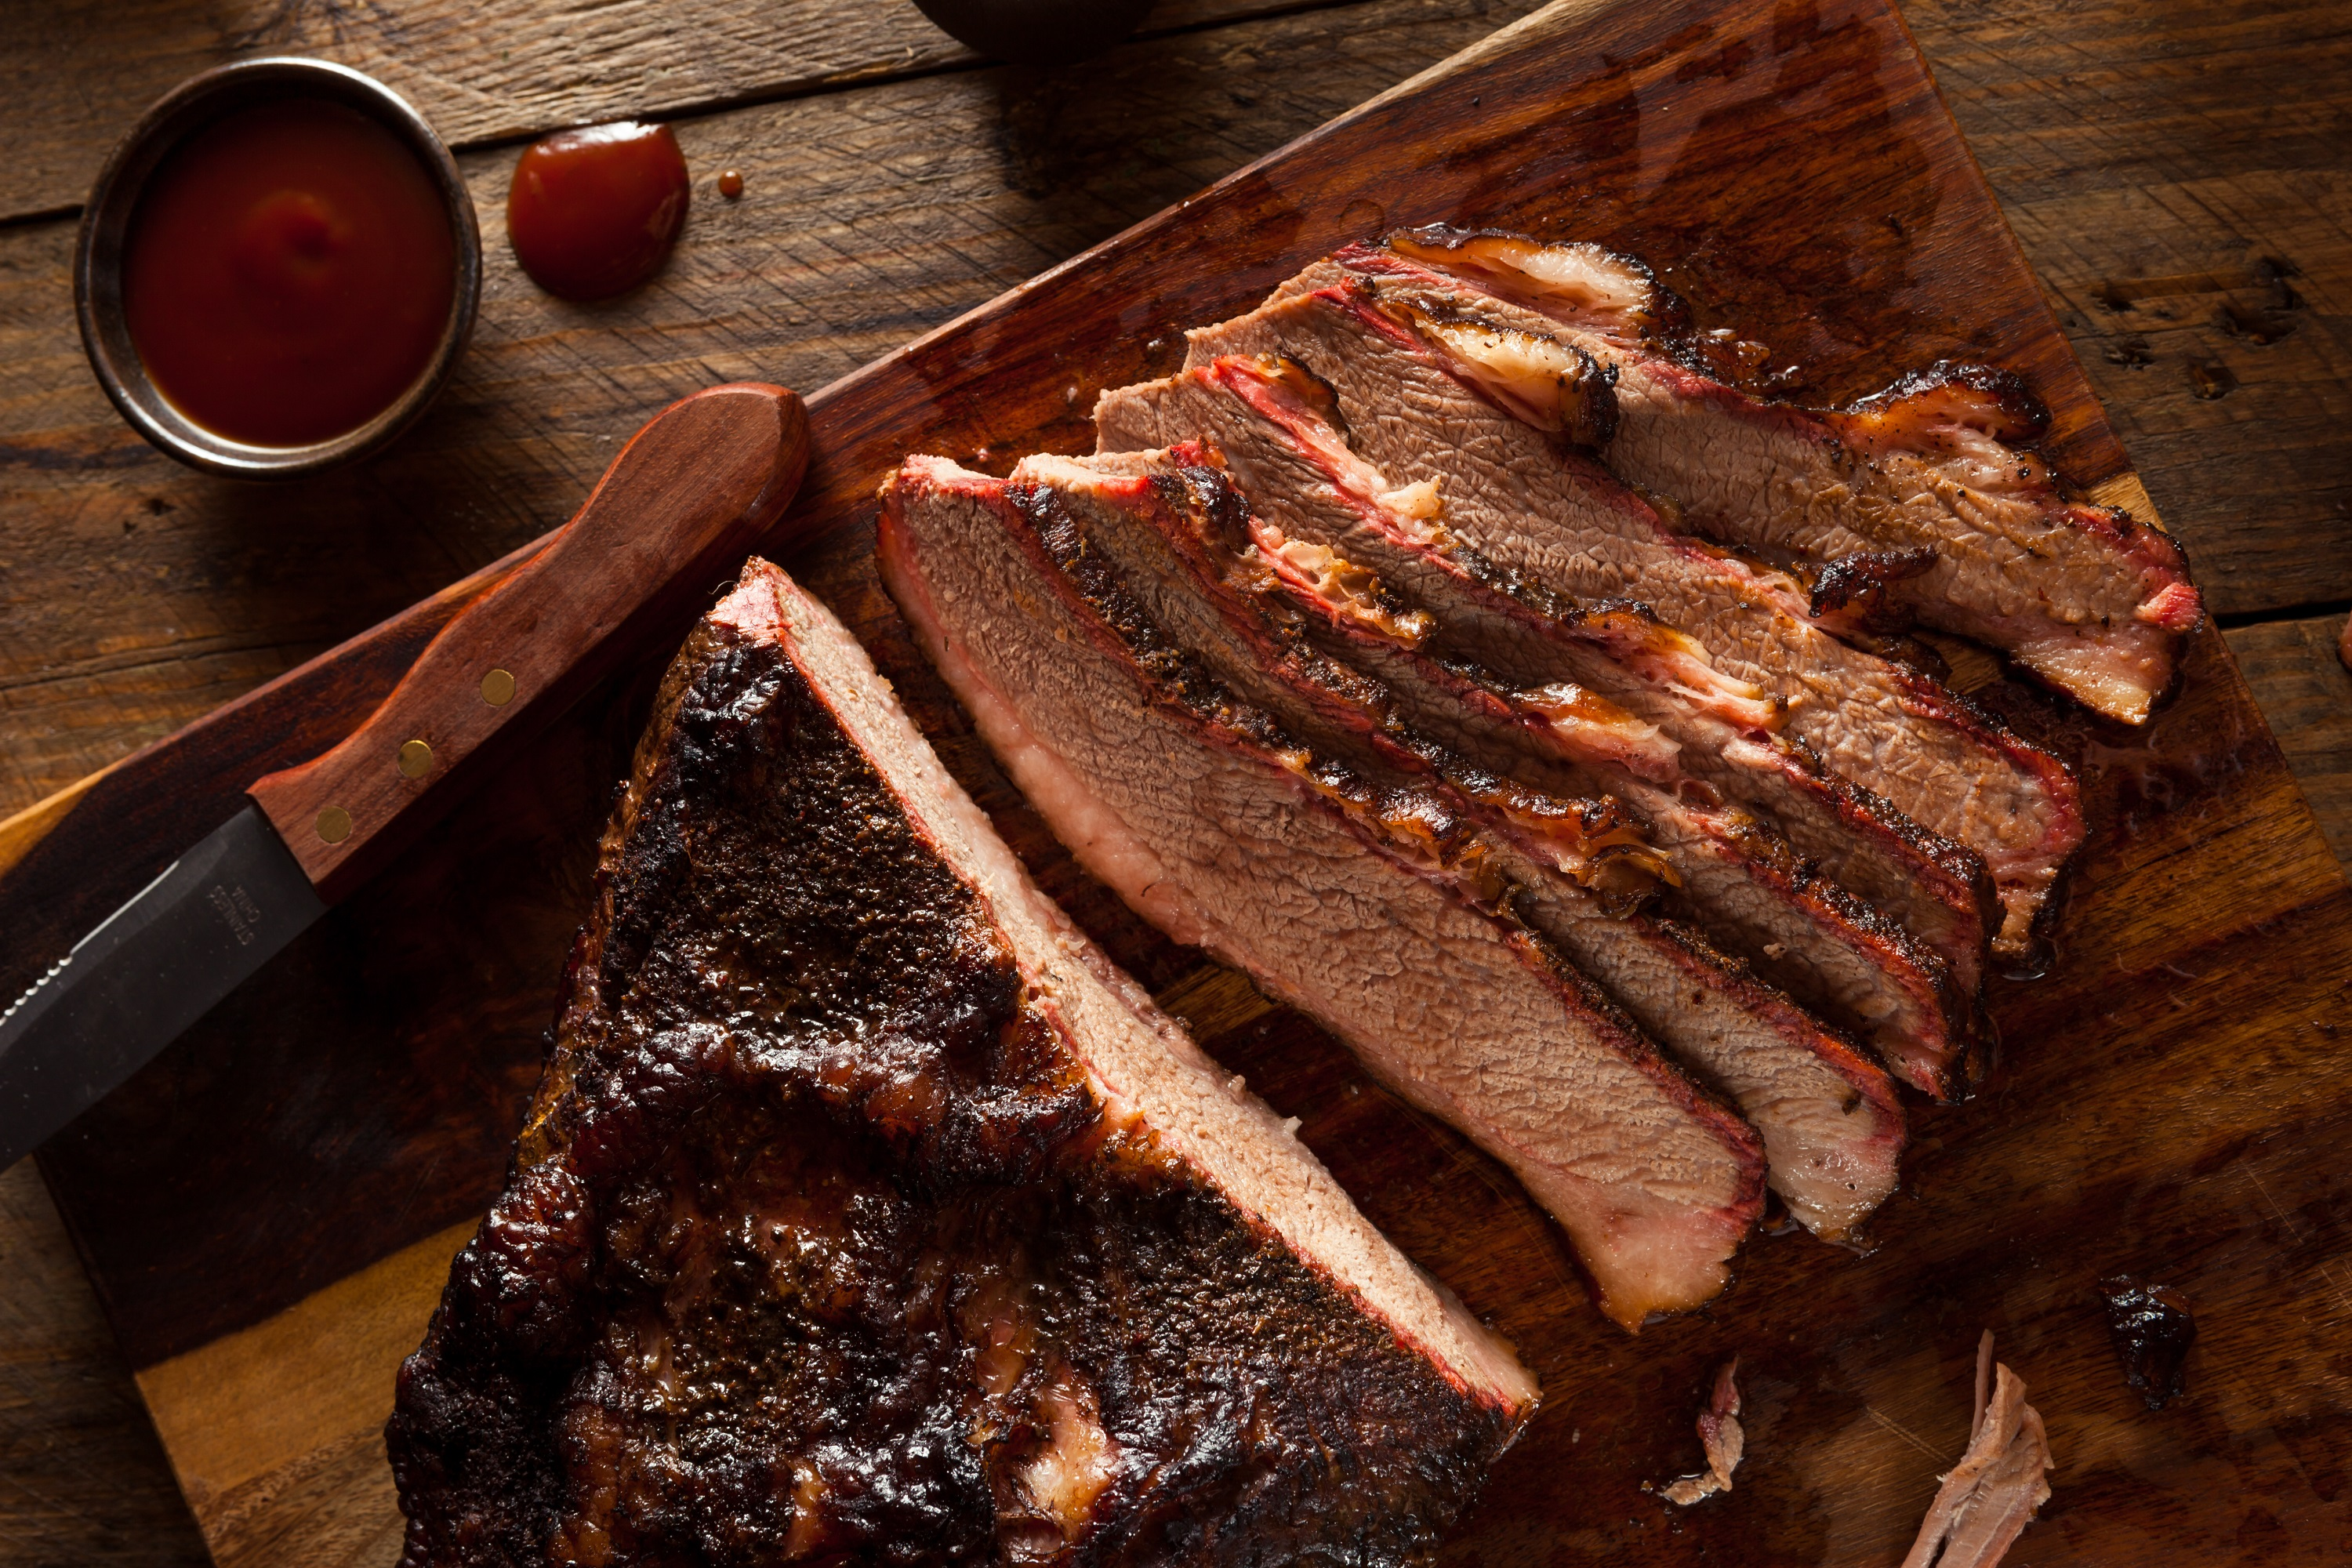 Image of sliced brisket